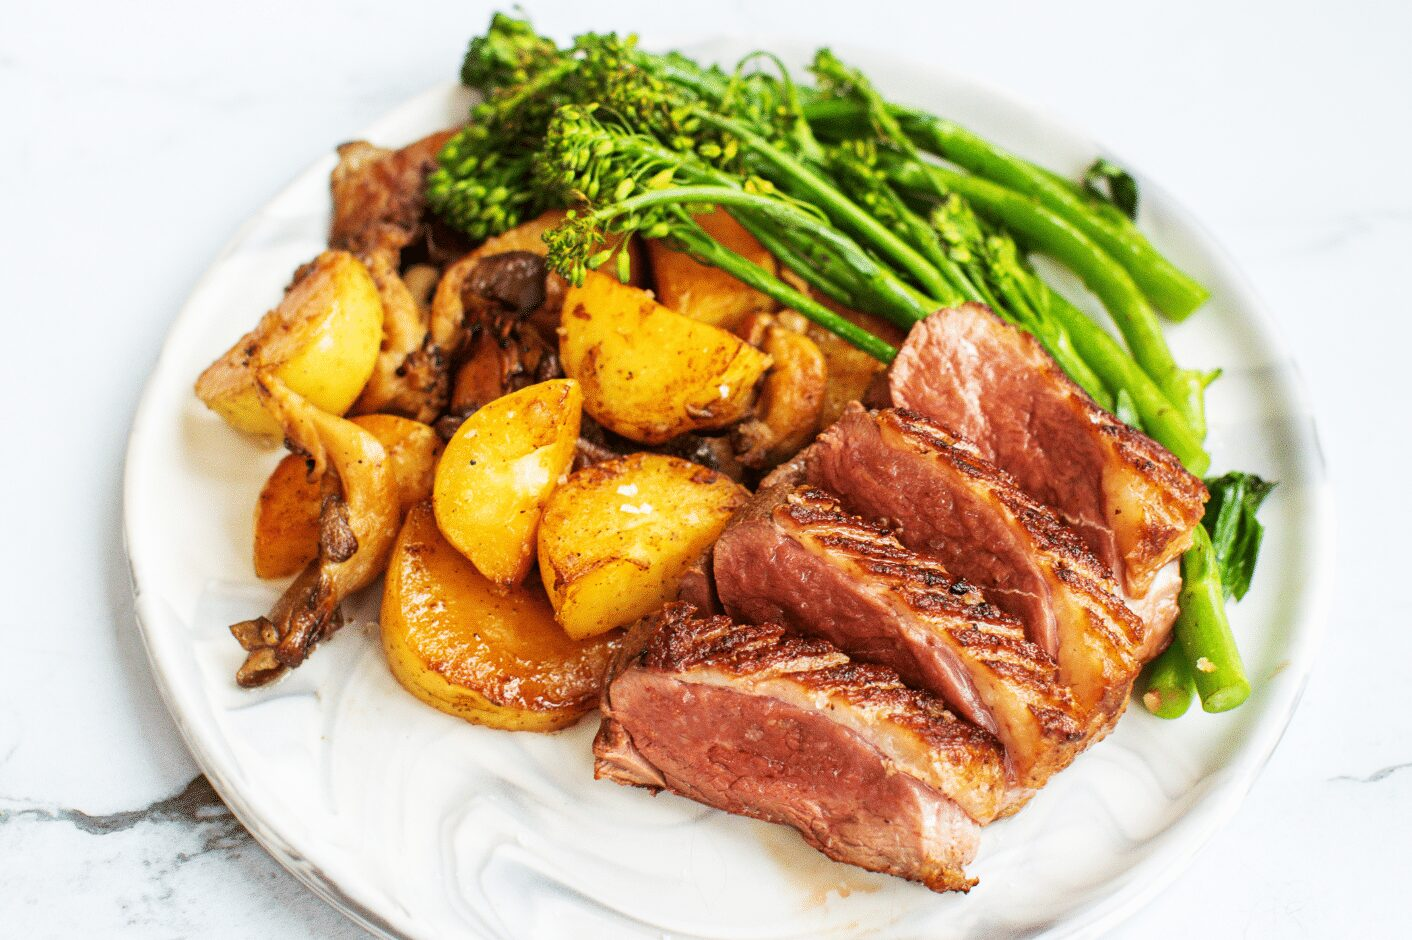 Seared Duck with Duck Fat Roasted Vegetables